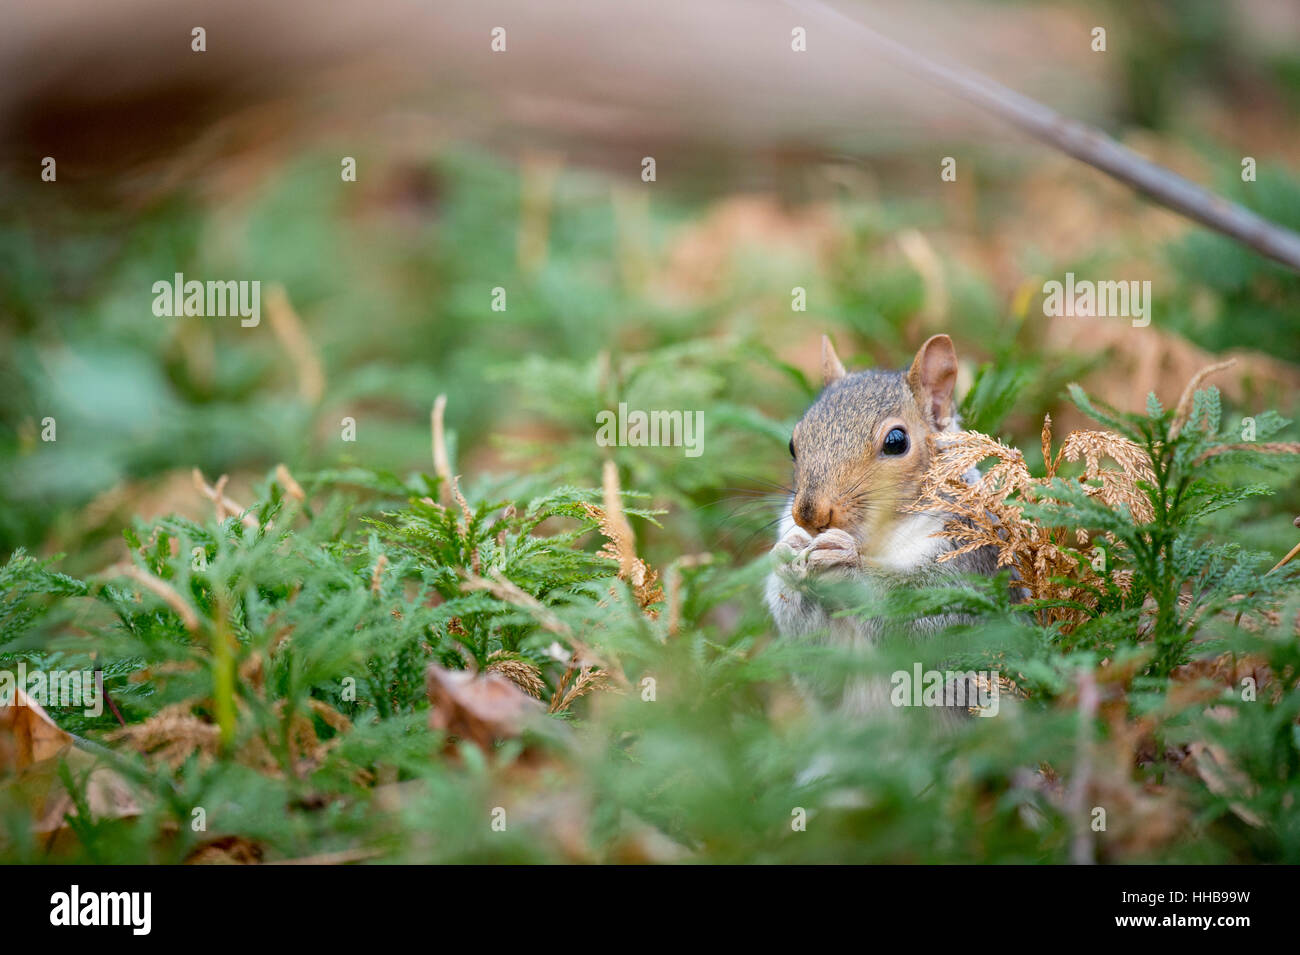 A Gray Squirrel eats food in a field of green ground pine. - Stock Image